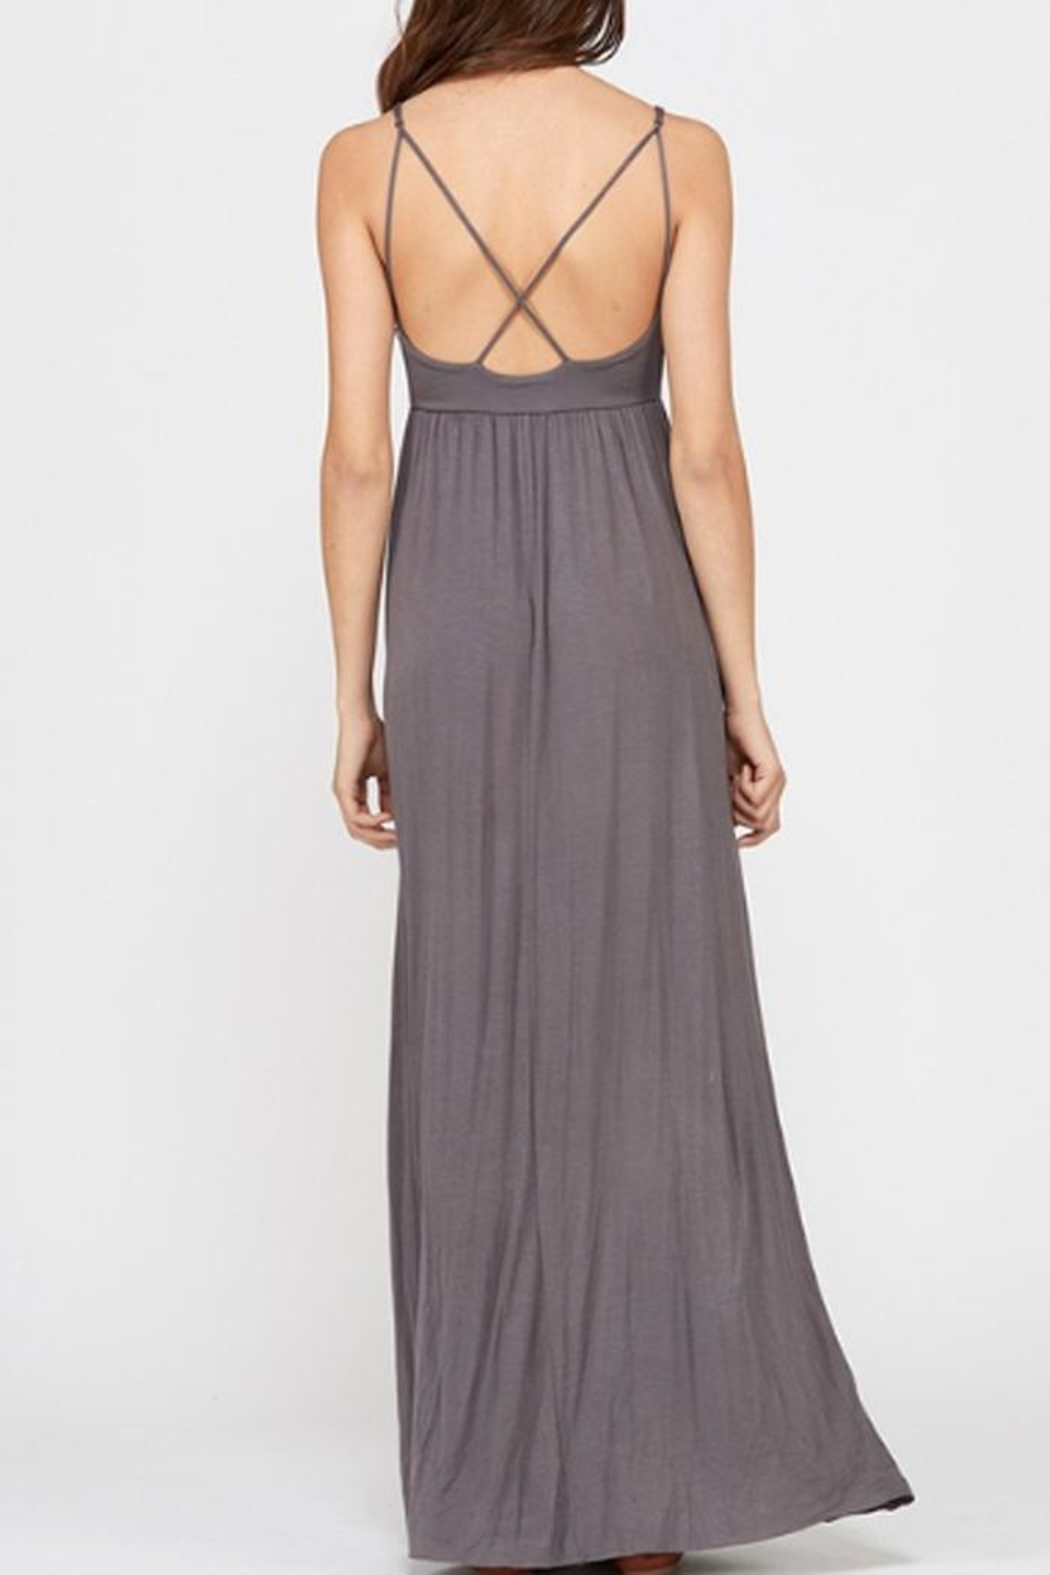 Wishlist Strappy Charcoal Maxi - Back Cropped Image